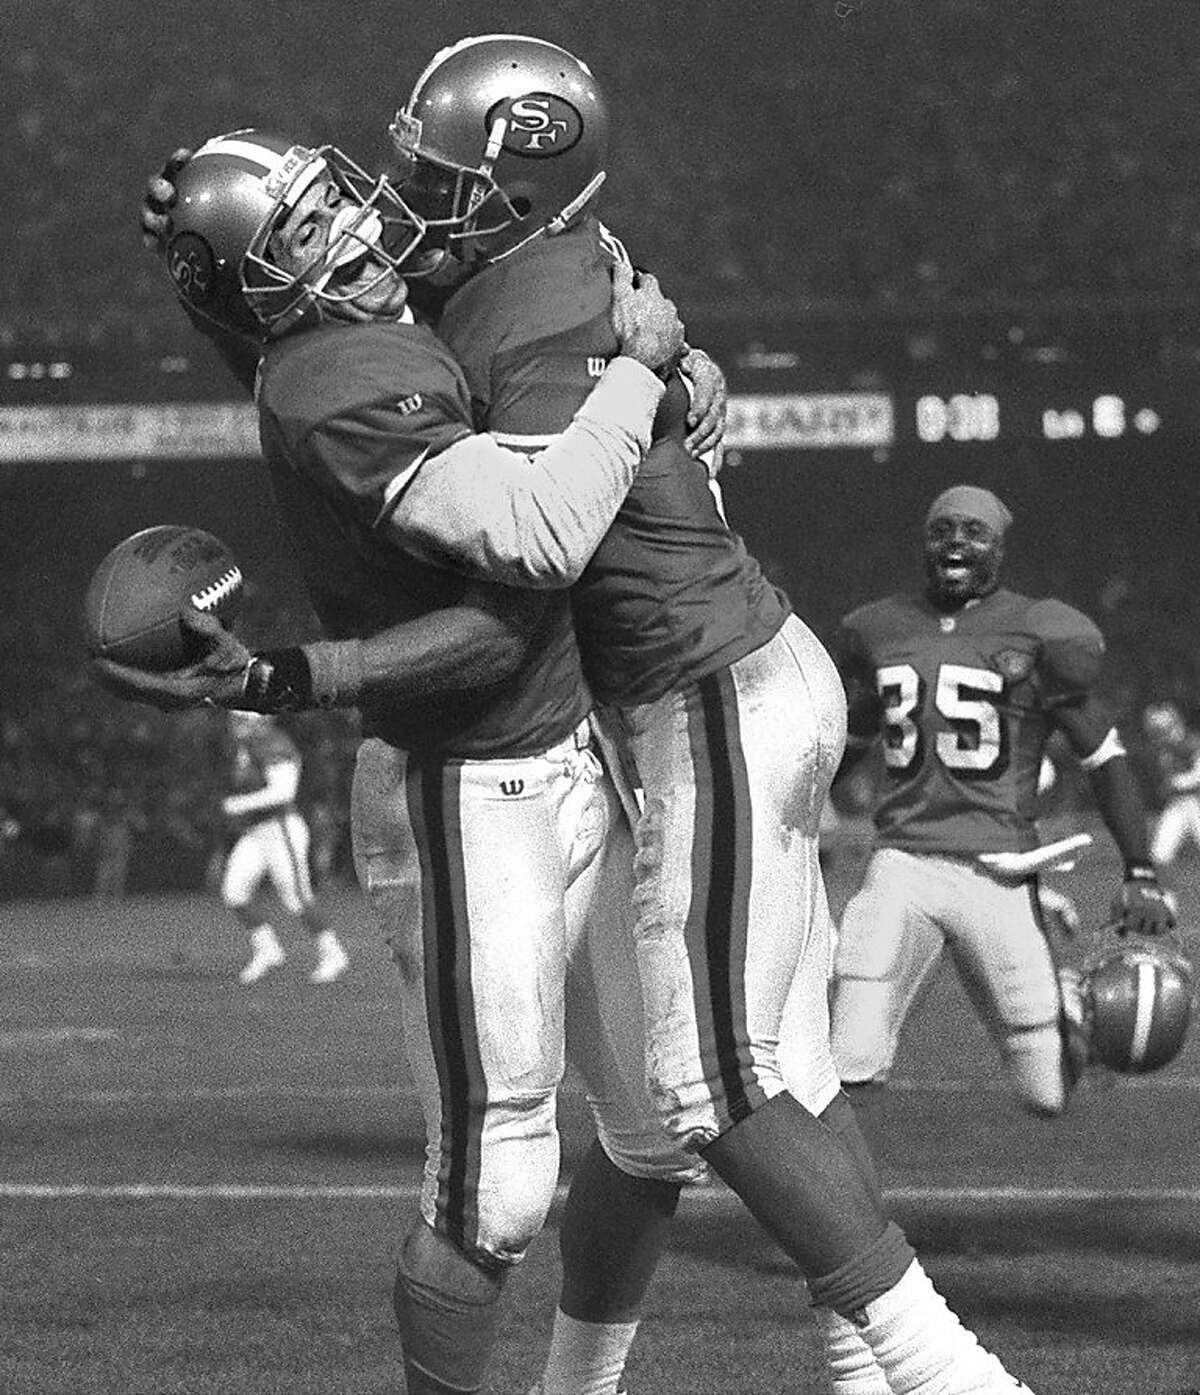 49ERS-RICEYOUNG/C/20NOV94/SP/DF - Steve Young and Jerry Rice embrace after connecting for Rice's 2nd of 3 TDs as the 49ers win over the Ram's at Candlestick Park. Dexter Carter joins in.